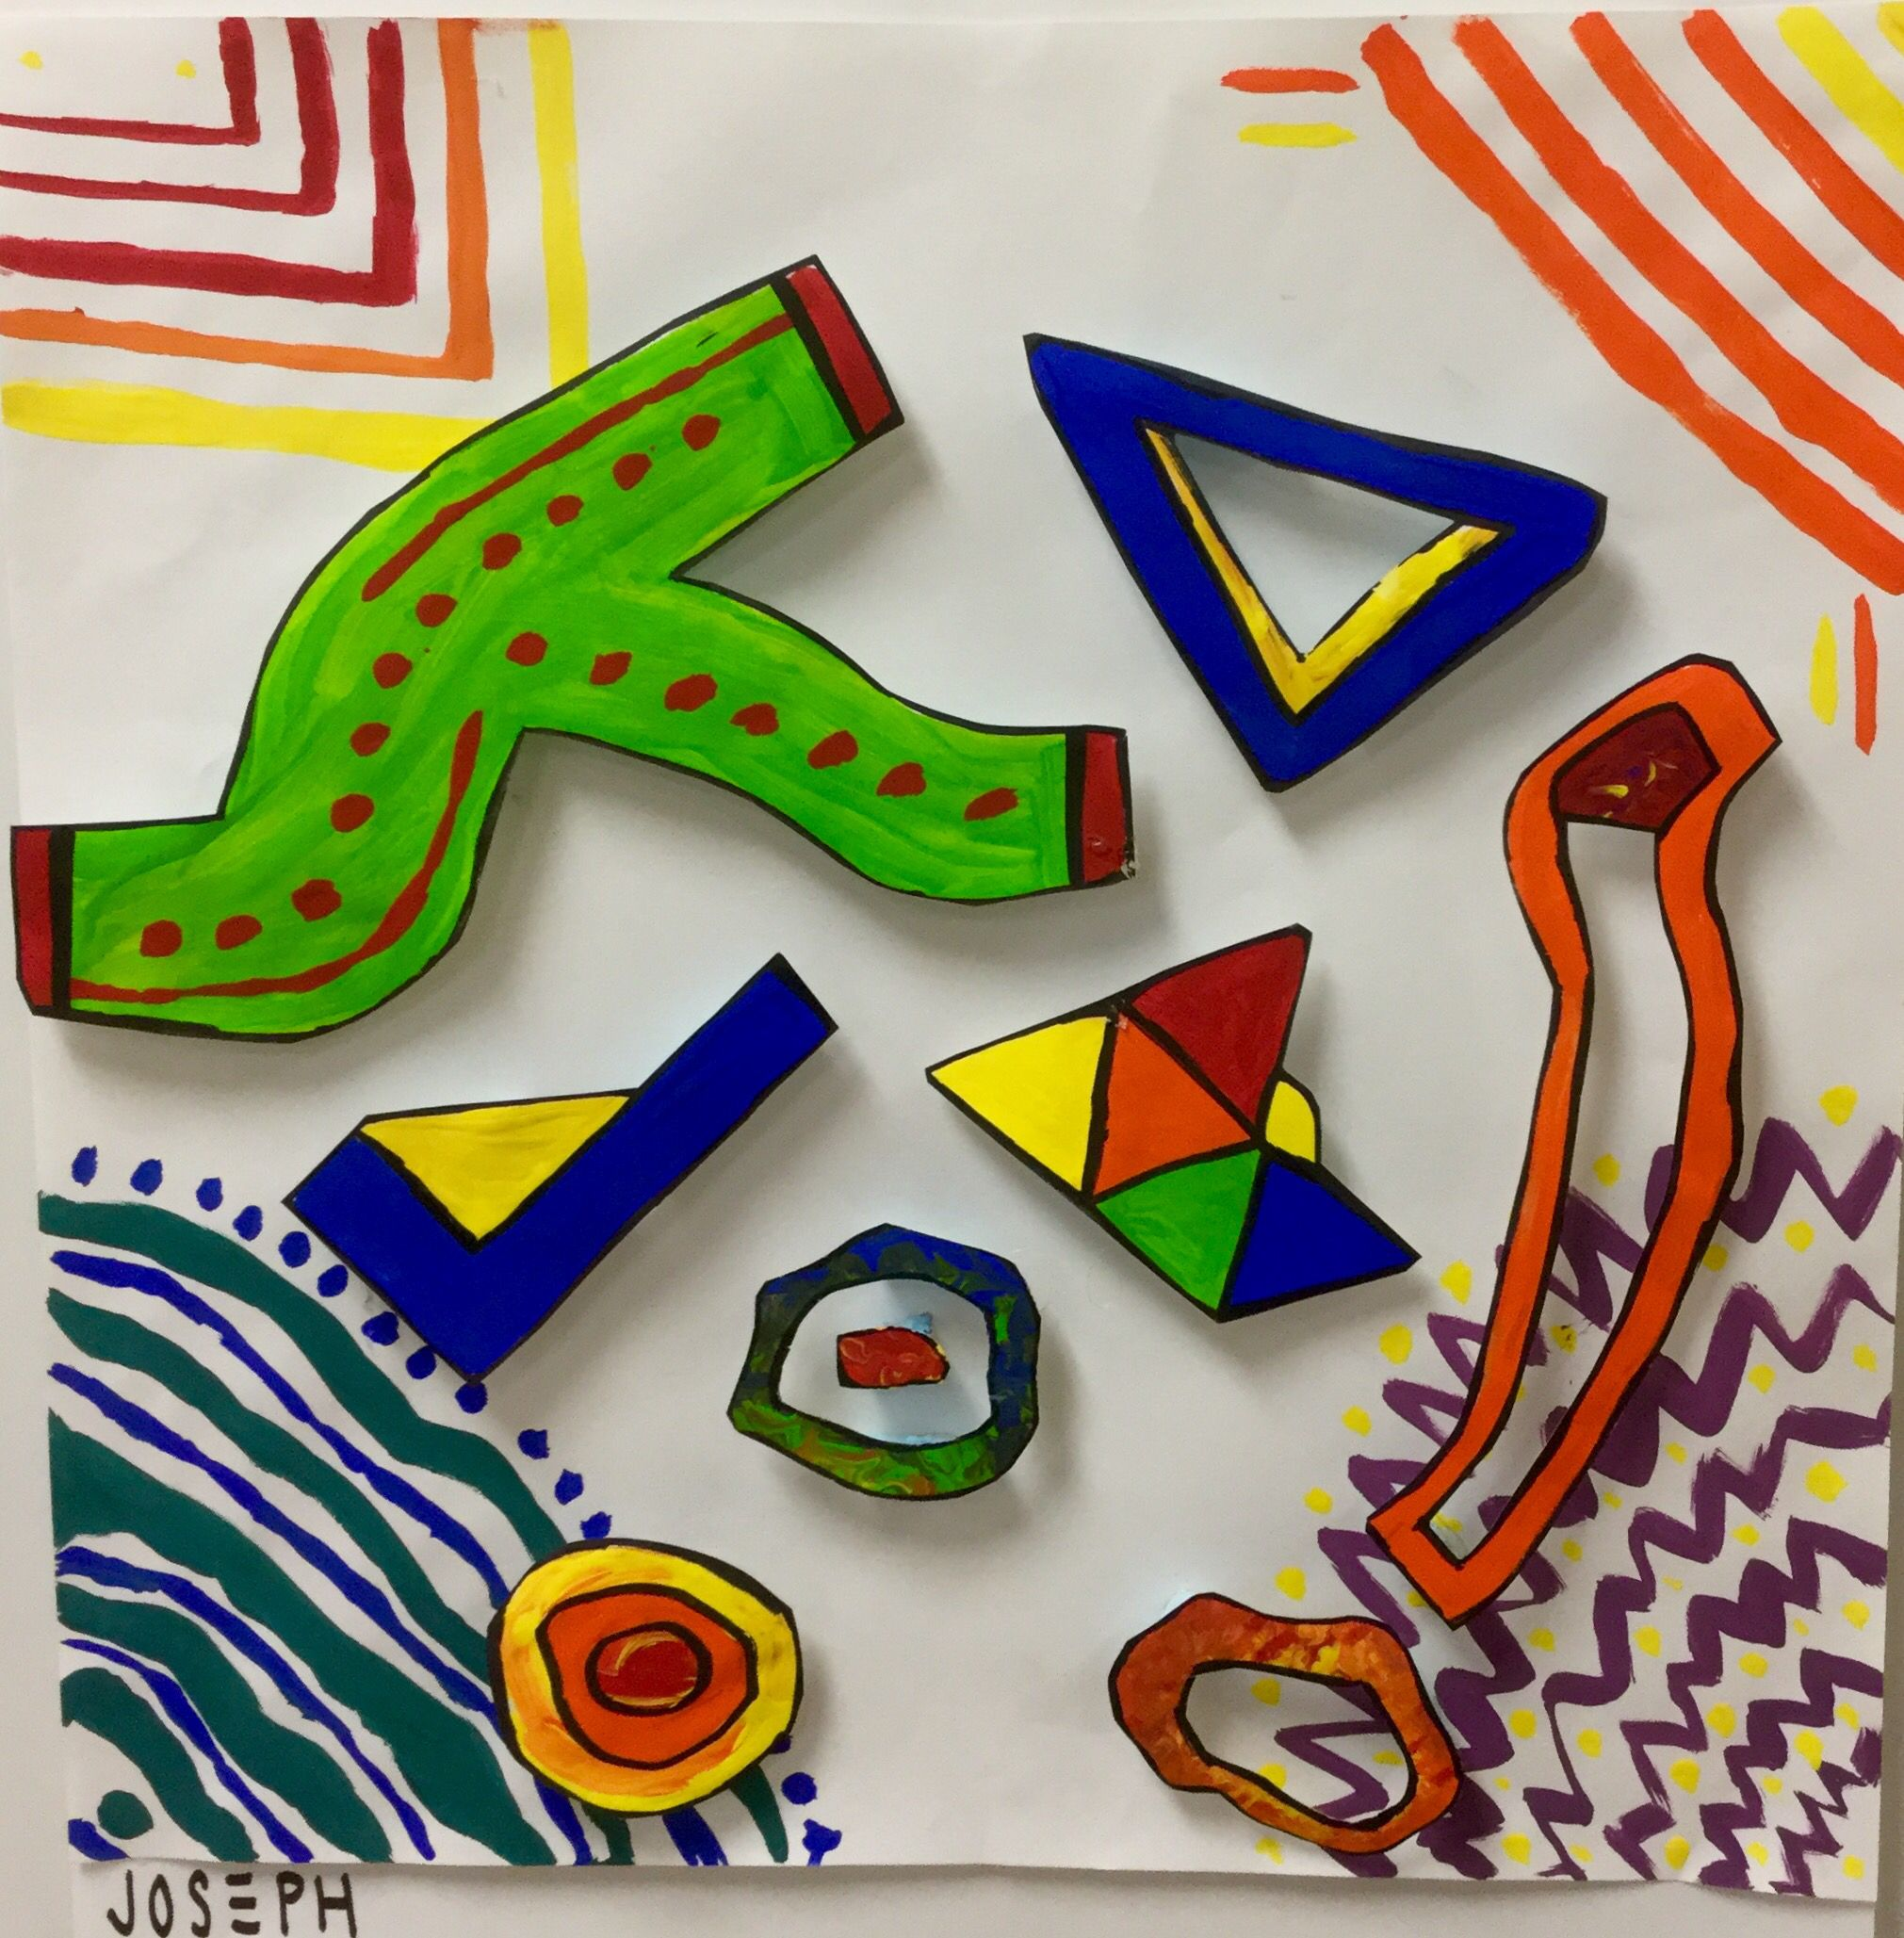 8th Grade Frank Stella Paper Sculptures-http://2soulsisters.blogspot.com/2016/05/stressed-out-stella.html